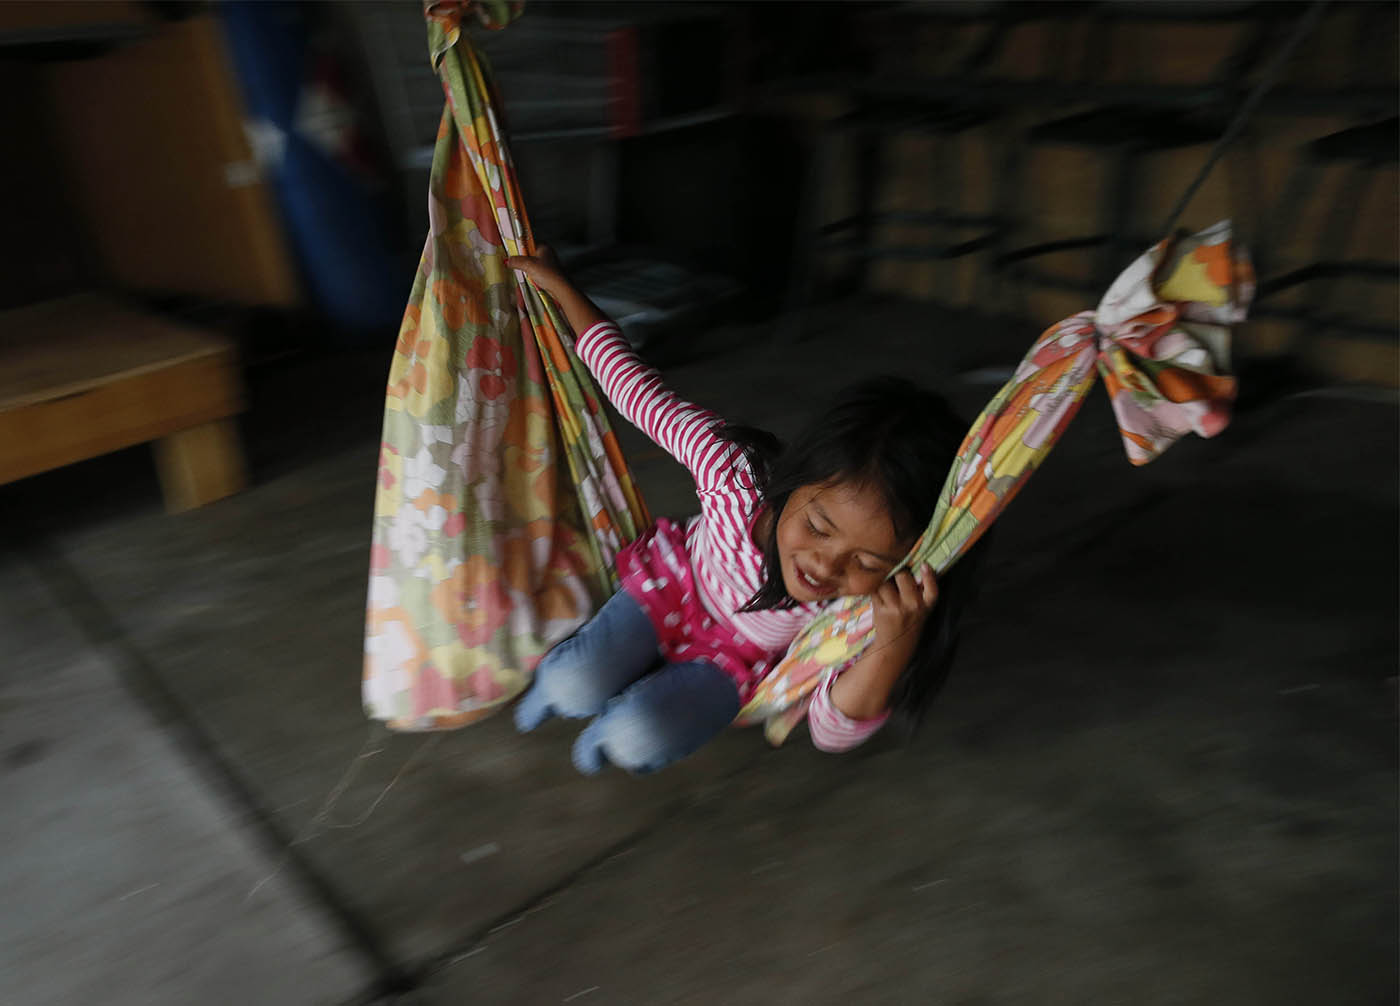 Naomi Tay, 5, plays in a makeshift hammock in the garage of a relative in Riverside, Wednesday, Aug. 12, 2015. (Derek Gee/Buffalo News)